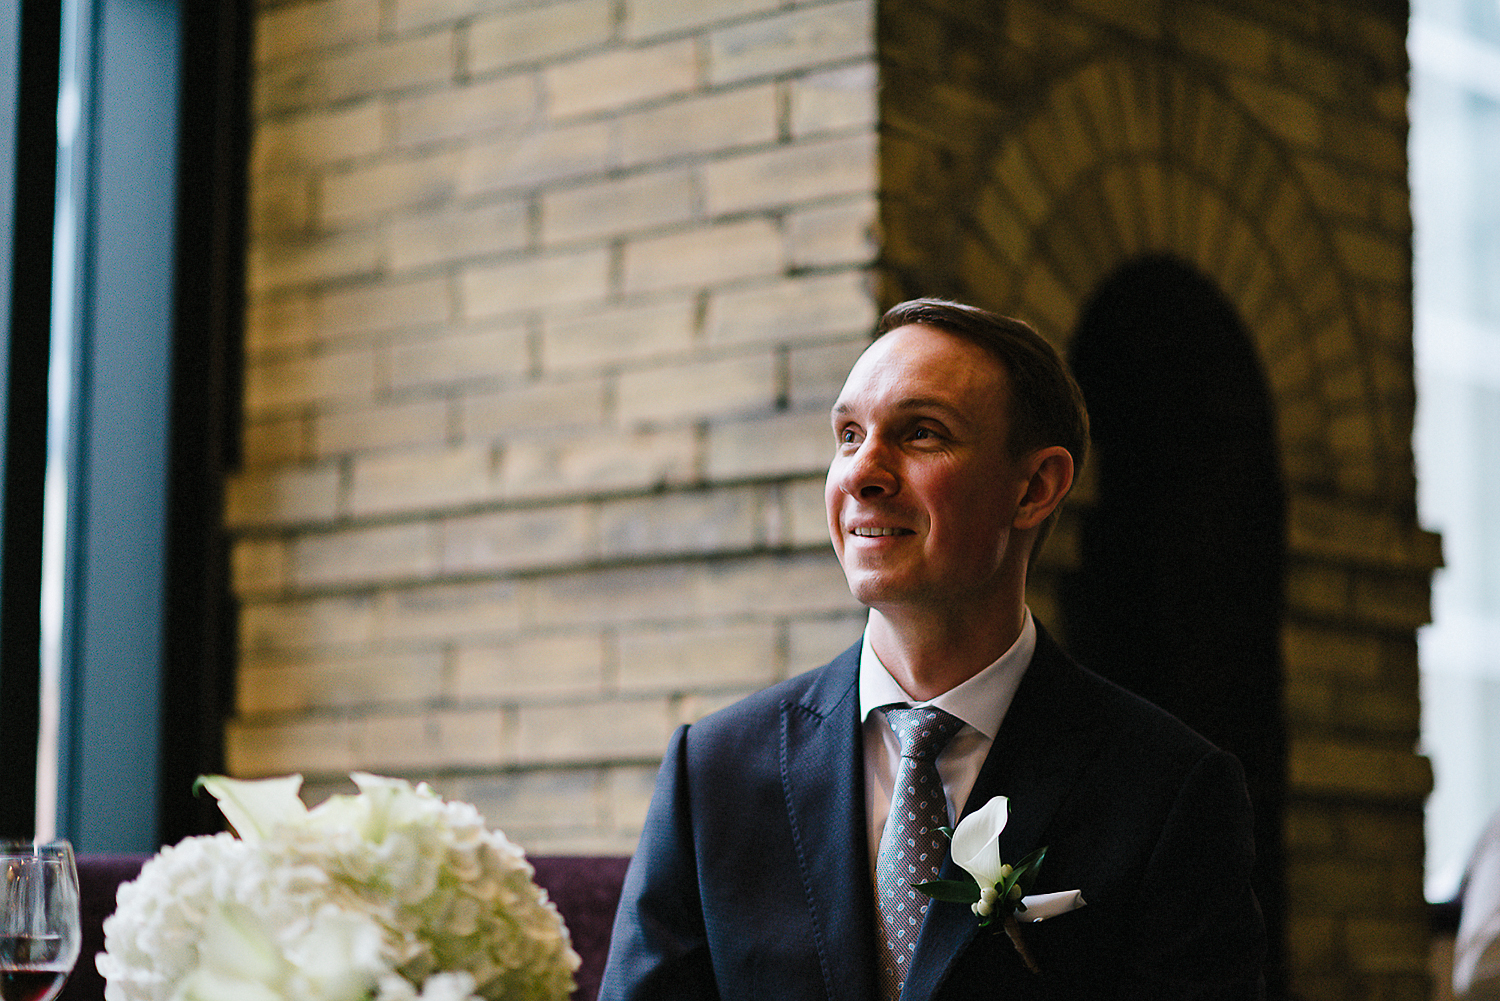 Best-Wedding-Photographers-Toronto_-Urban-City-Wedding-Photography-Downtown-Toronto-Photographer_Vintage-Bride-and-Groom-Details_The-Chase-Wedding-Venue_Candid-Photojournalistic-Documentary-Reception-Restaurant-Candid-Groom-Reaction.jpg